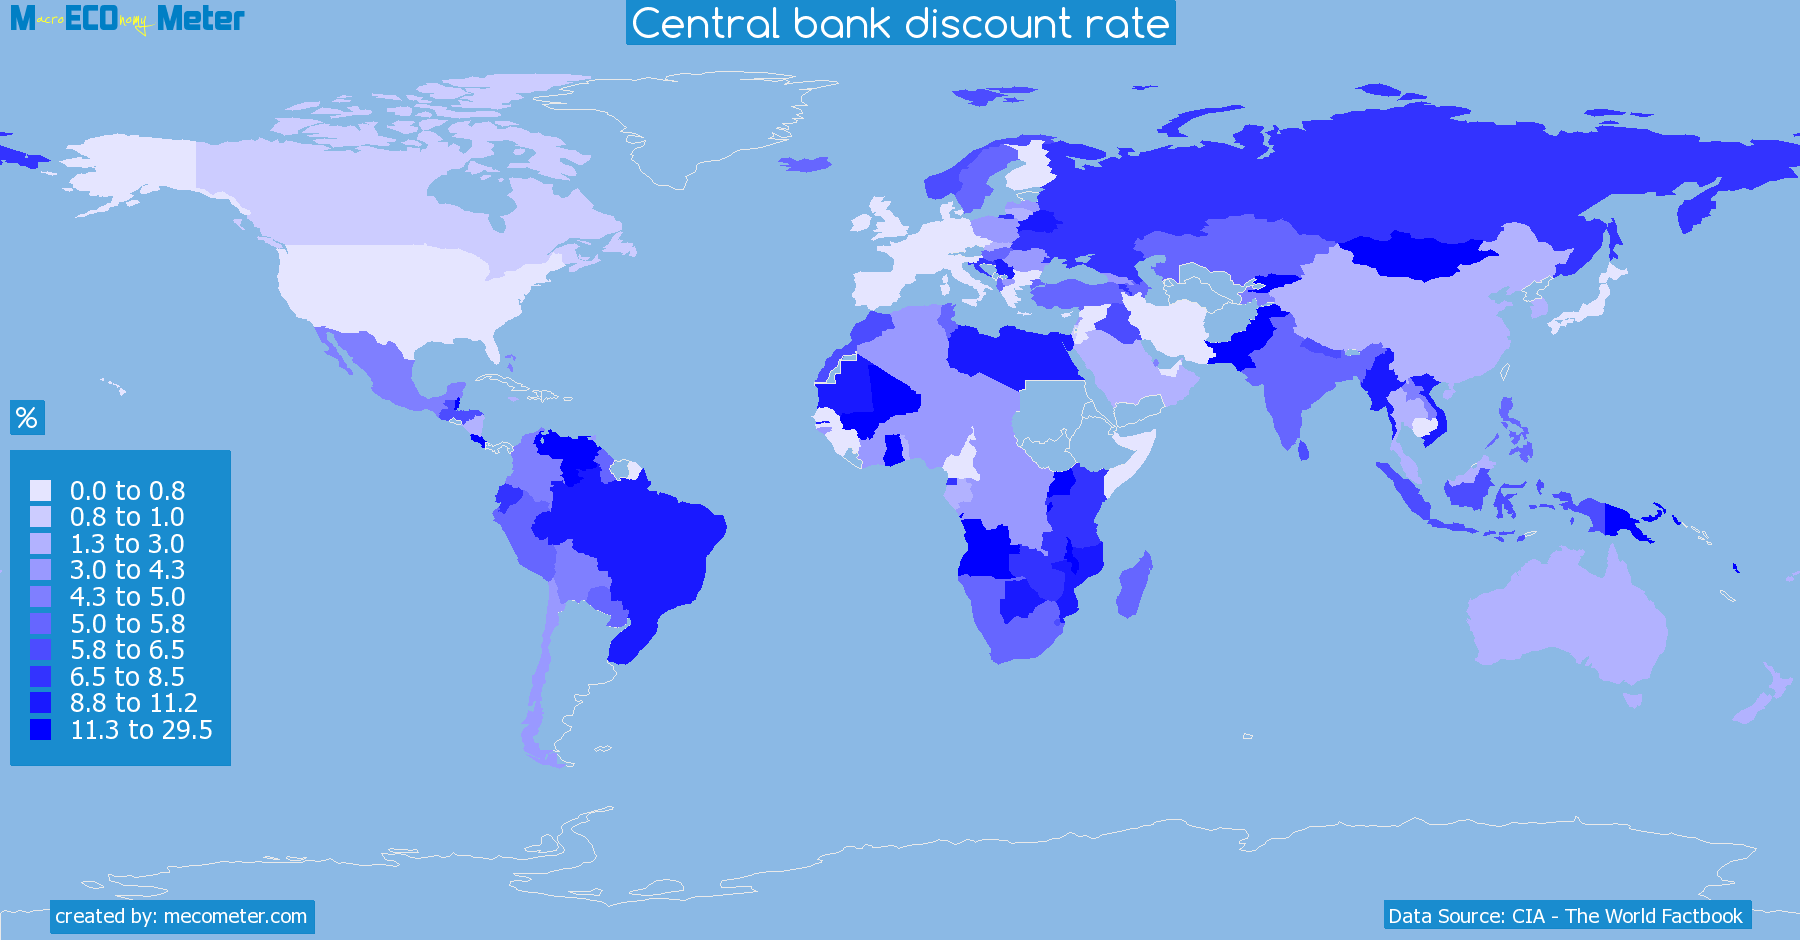 Central bank discount rate